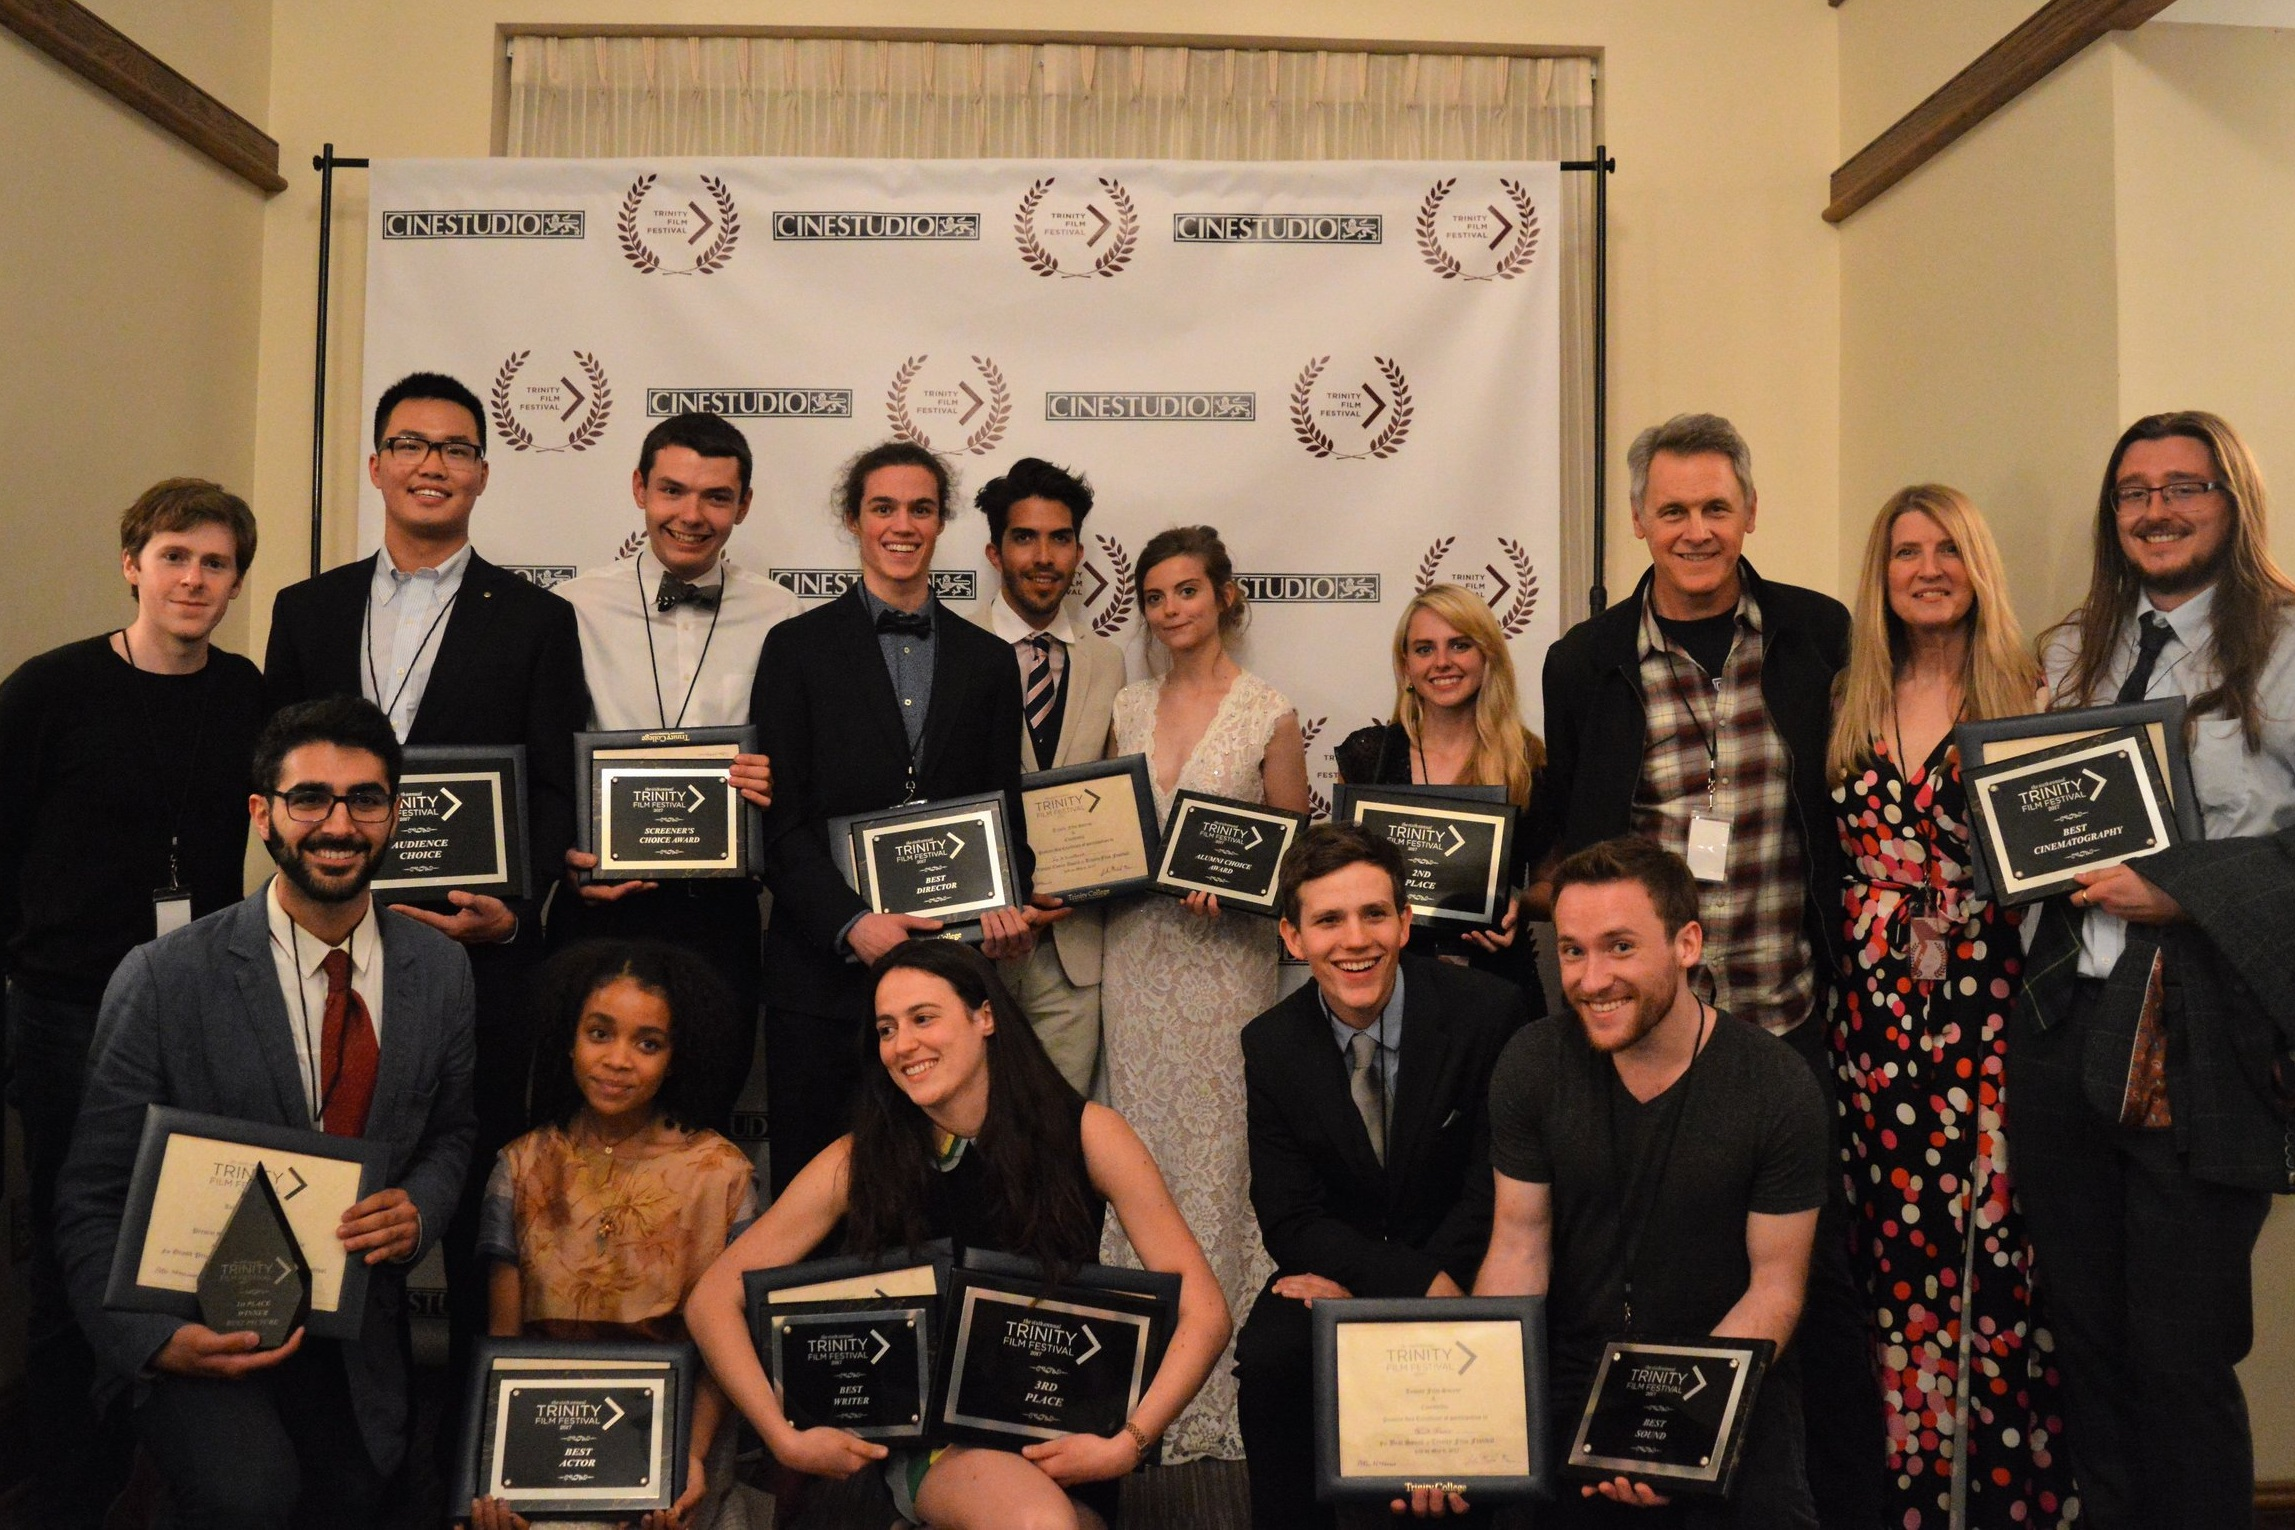 The 2017 winning filmmakers pose with guest judges Pierce Cravens, Kimberly Skyrme, and Mark Moses.